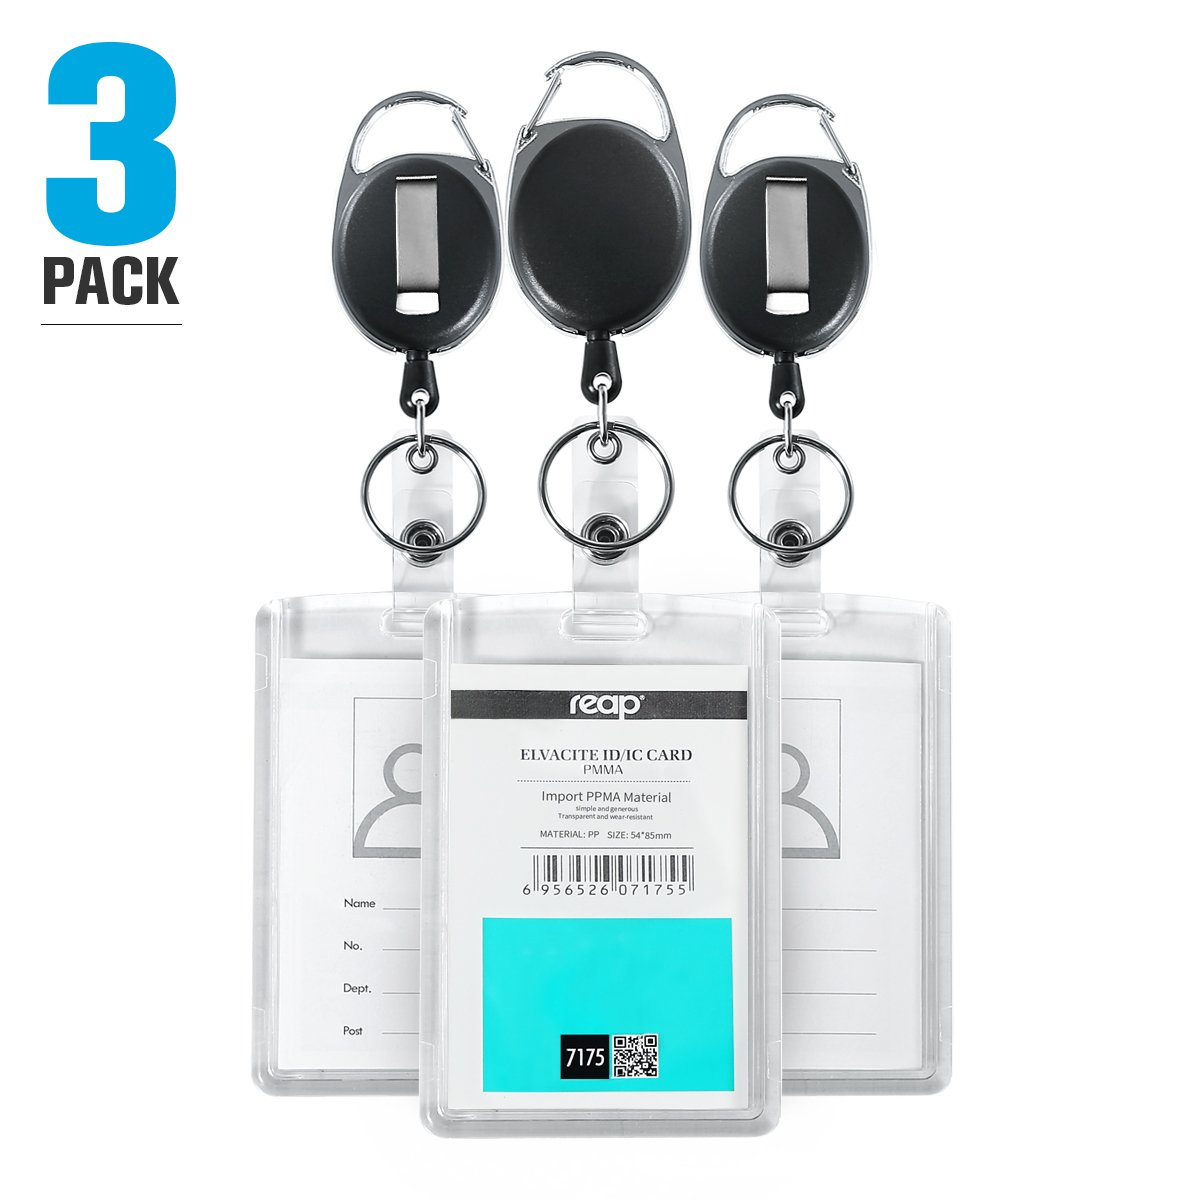 3 Pack Heavy Duty Retractable Badge Holder - Hard Plastic Clear Acrylic Top Loading Two ID Card with Retractable Badge Reel Belt Clip and Key Ring by Reap